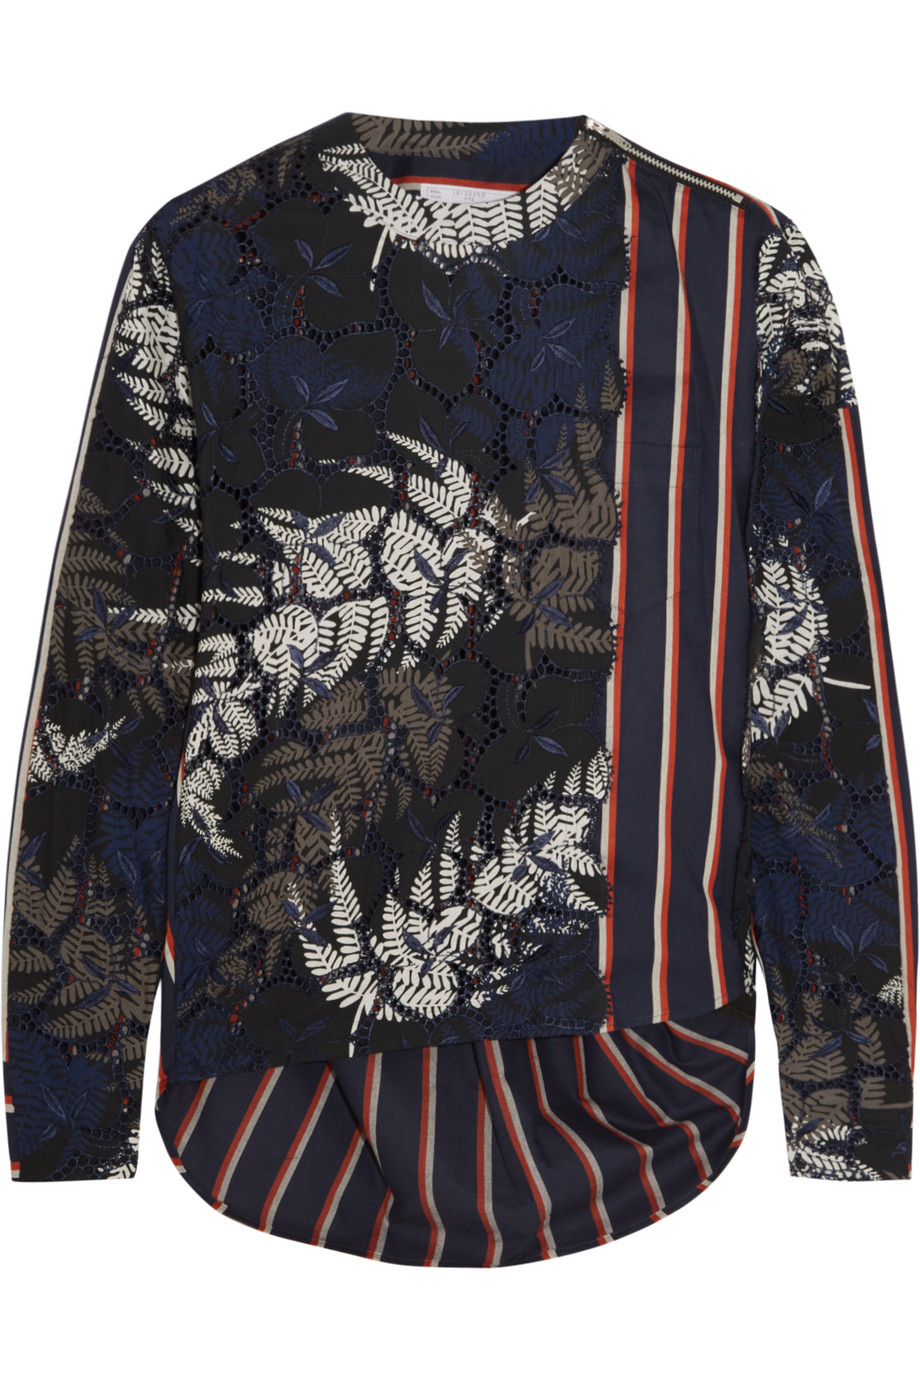 Sacai Guipure Lace and Cotton-Blend Blouse, Midnight Blue, Women's, Size: 1